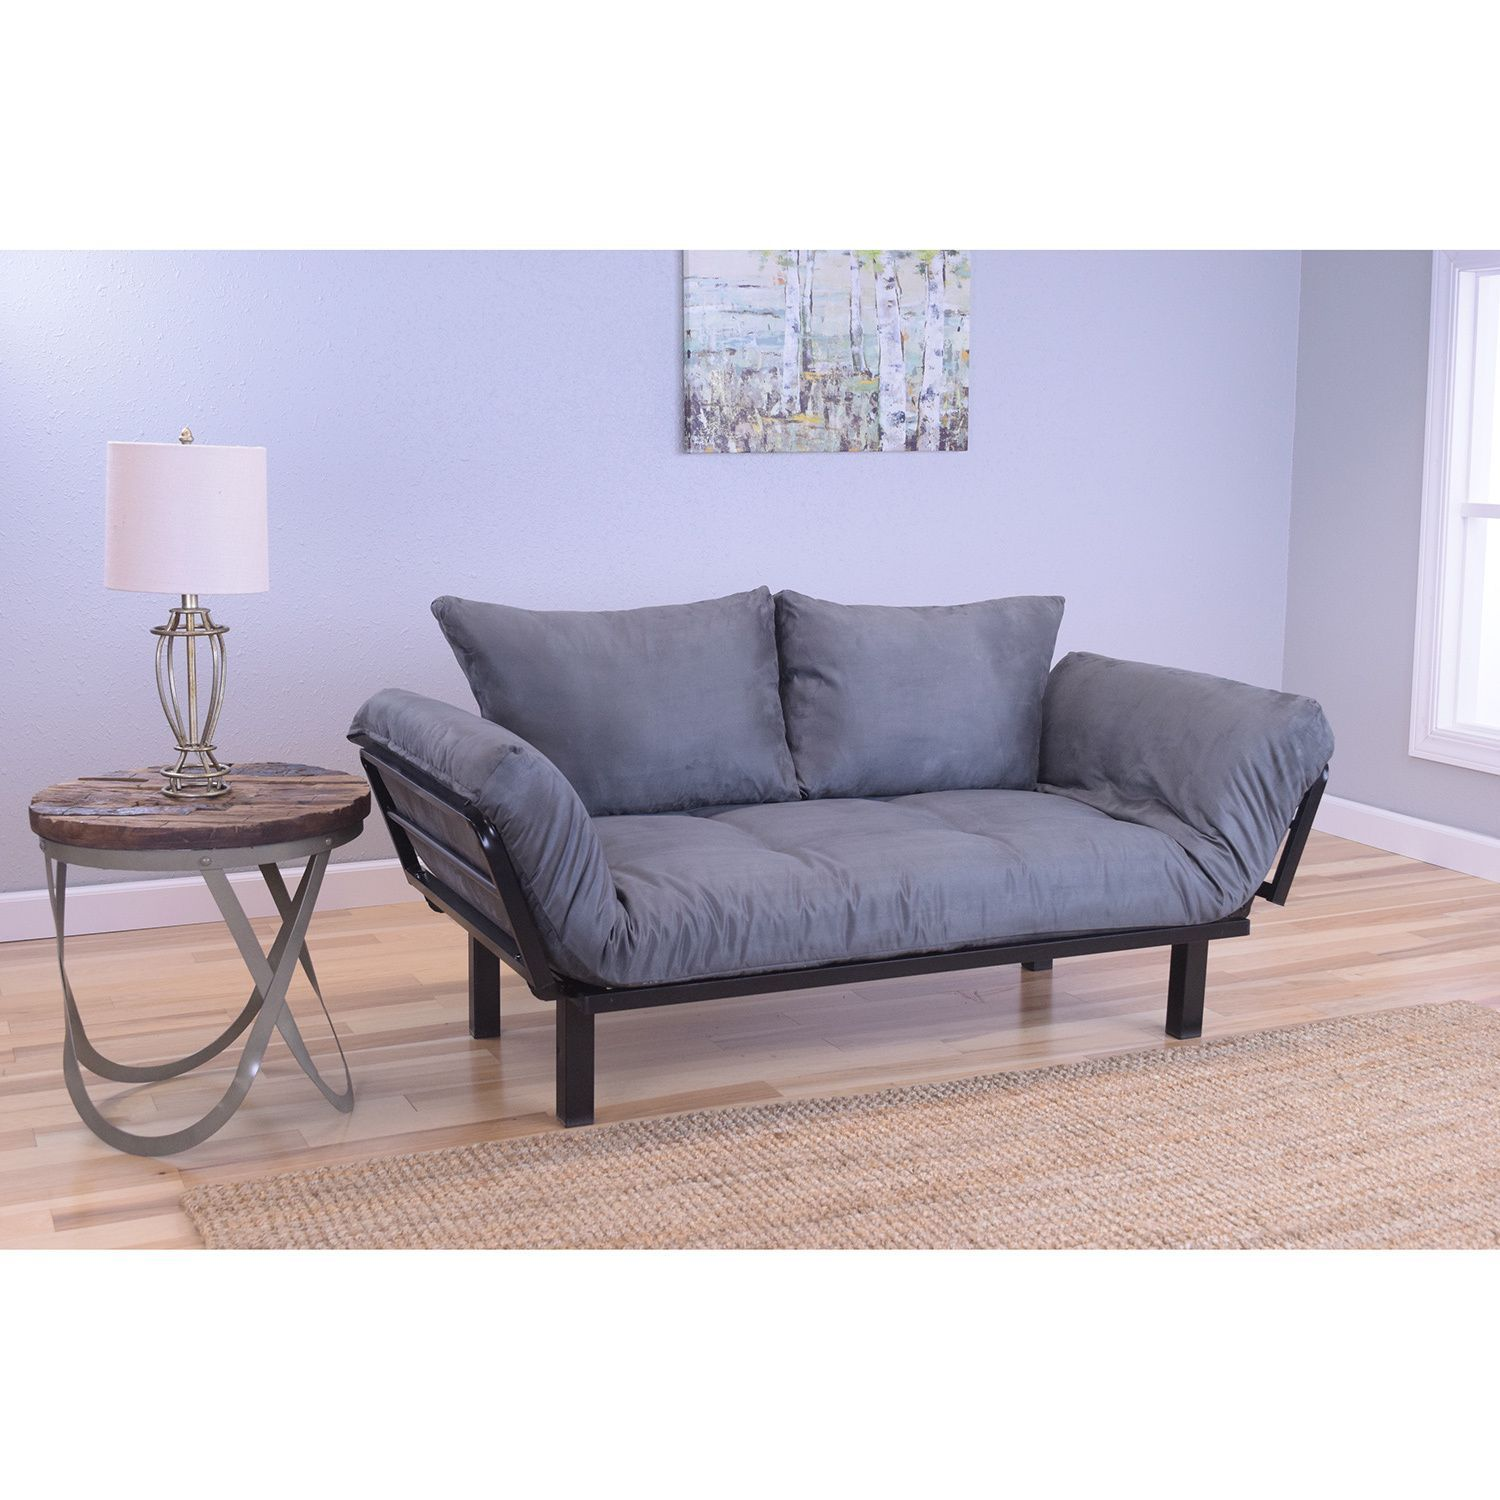 Somette Eli Spacely Daybed Lounger with Suede Grey Mattress (Black ...